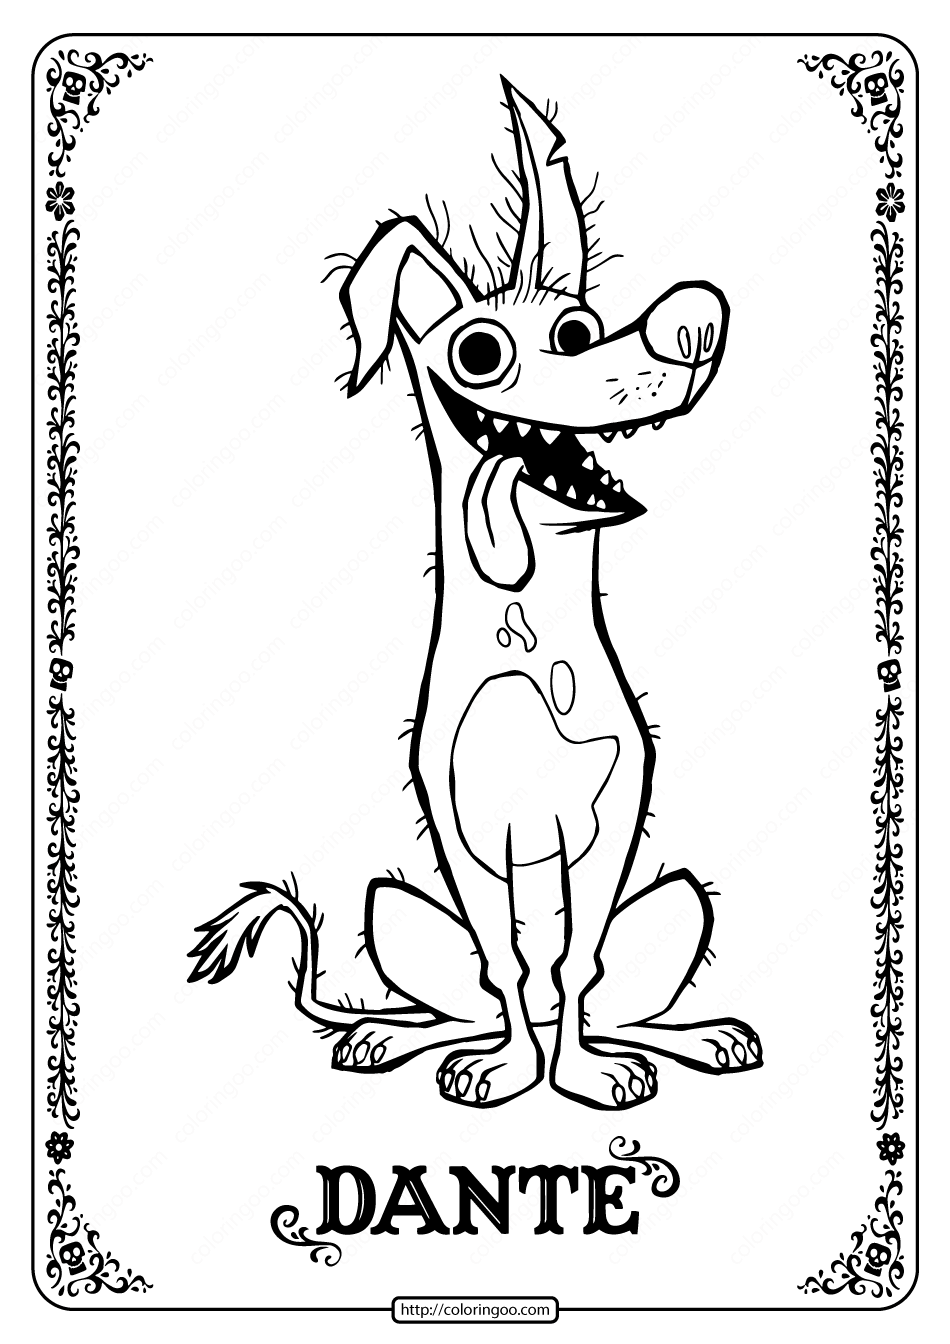 Printable Disney Coco Dante Coloring Pages - 02